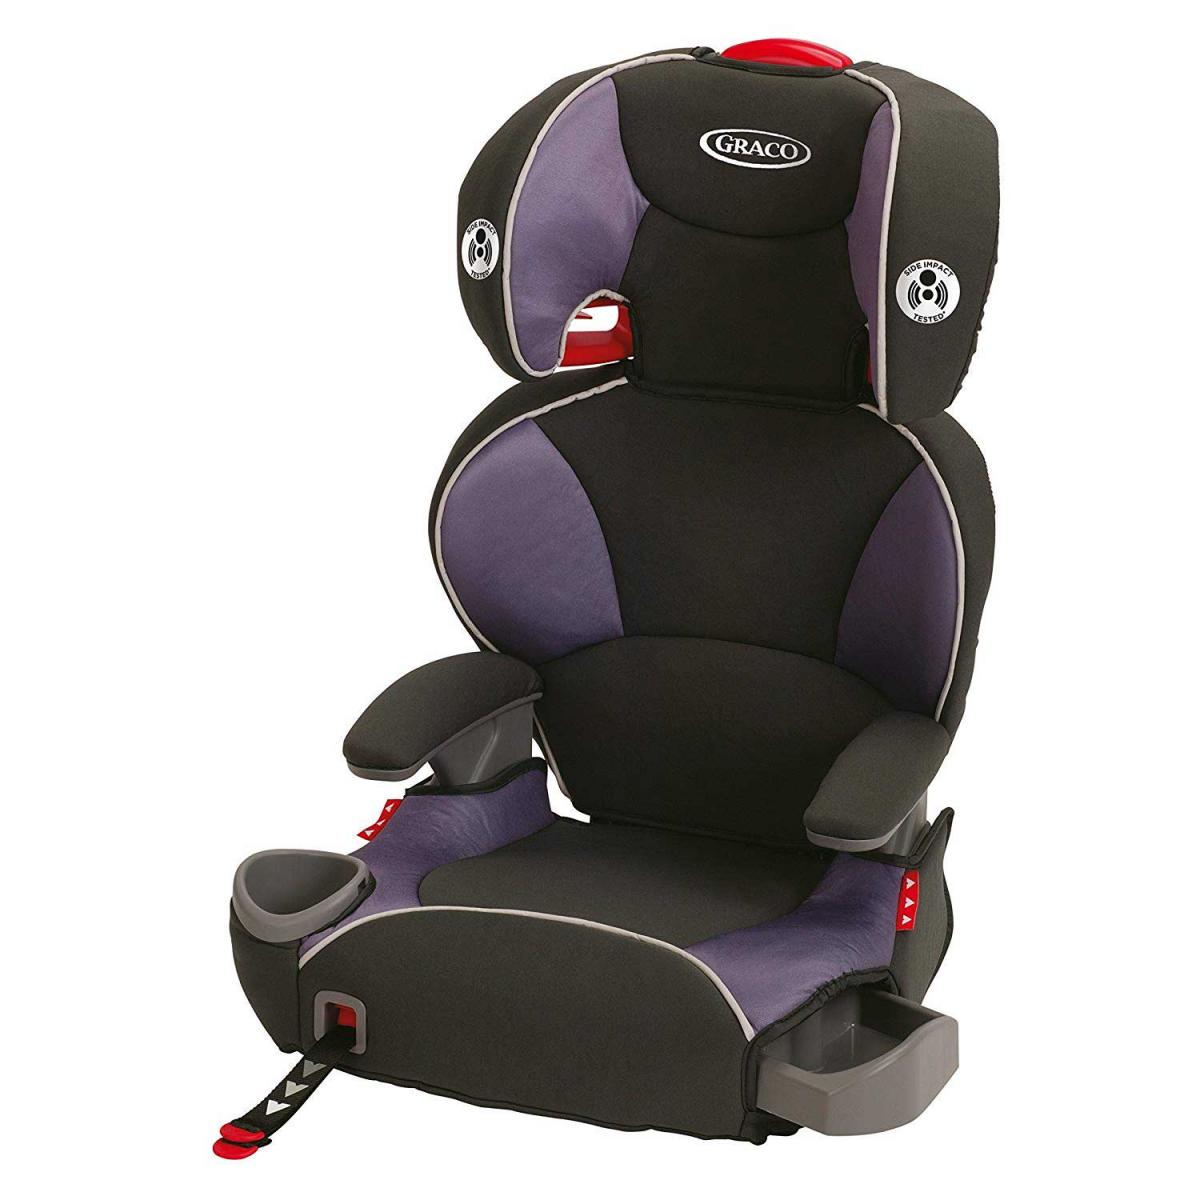 Best High Back Booster Seat